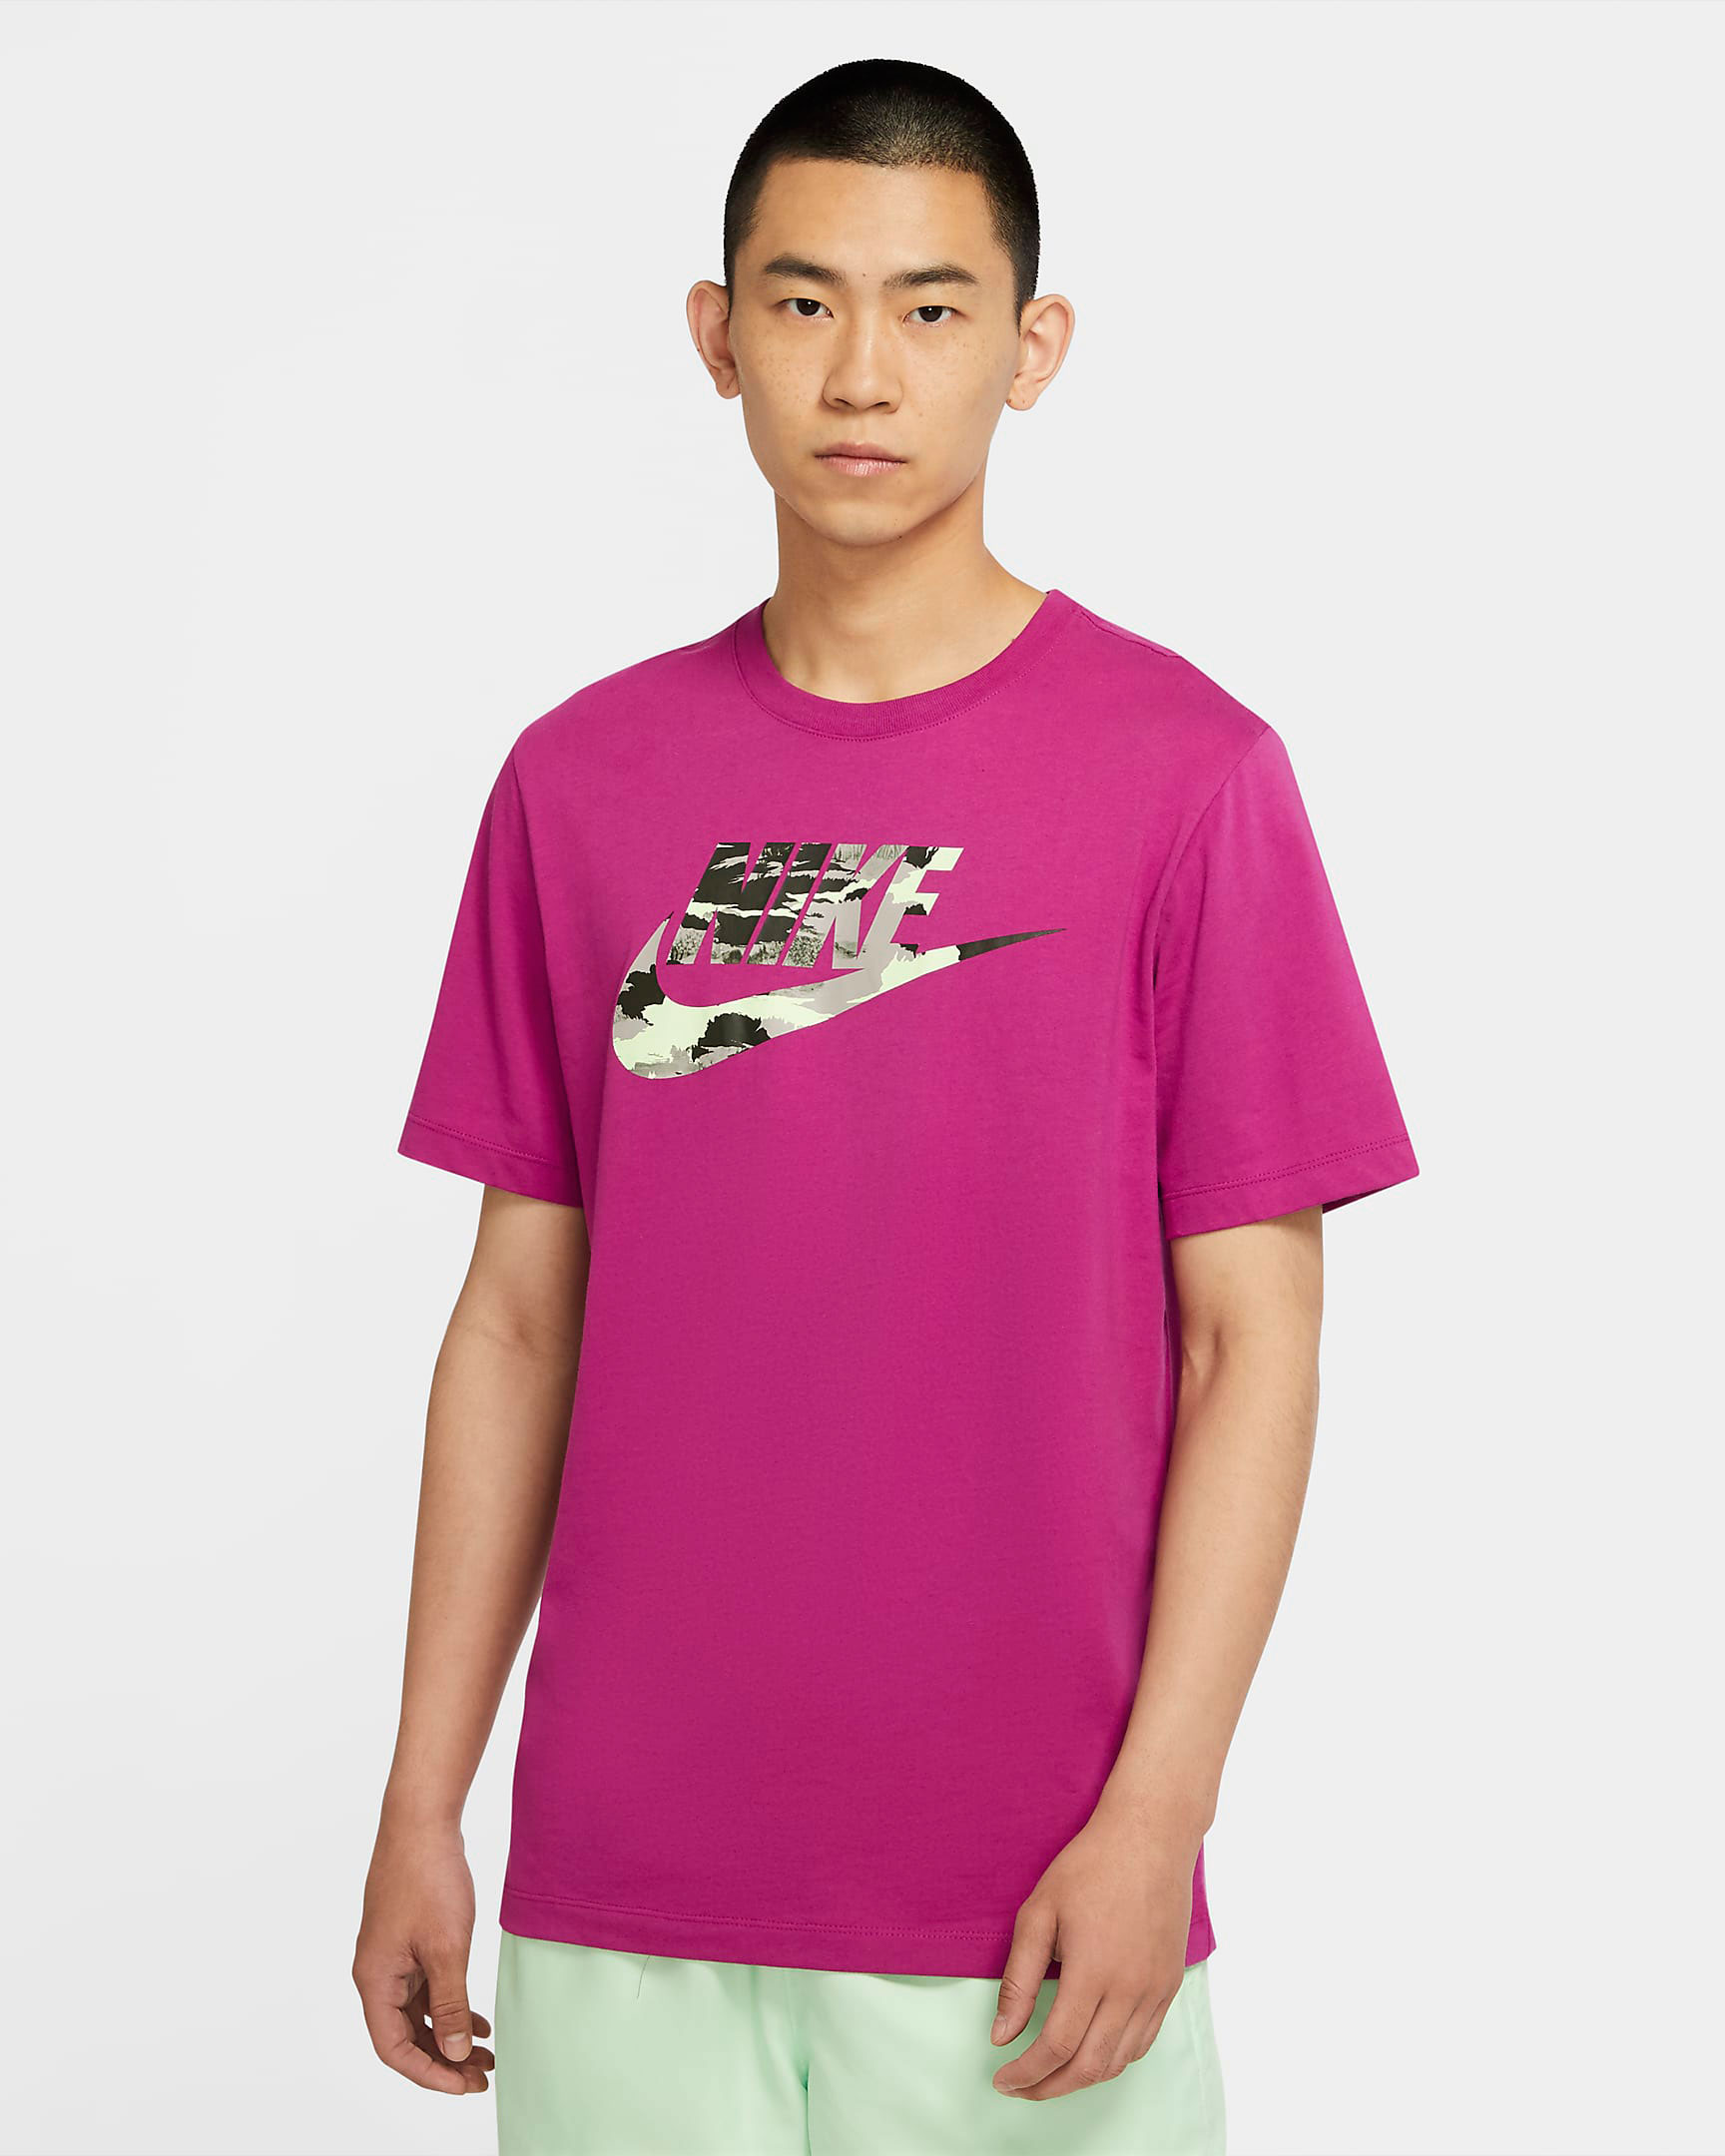 jordan-6-quai-54-nike-shirt-match-purple-sail